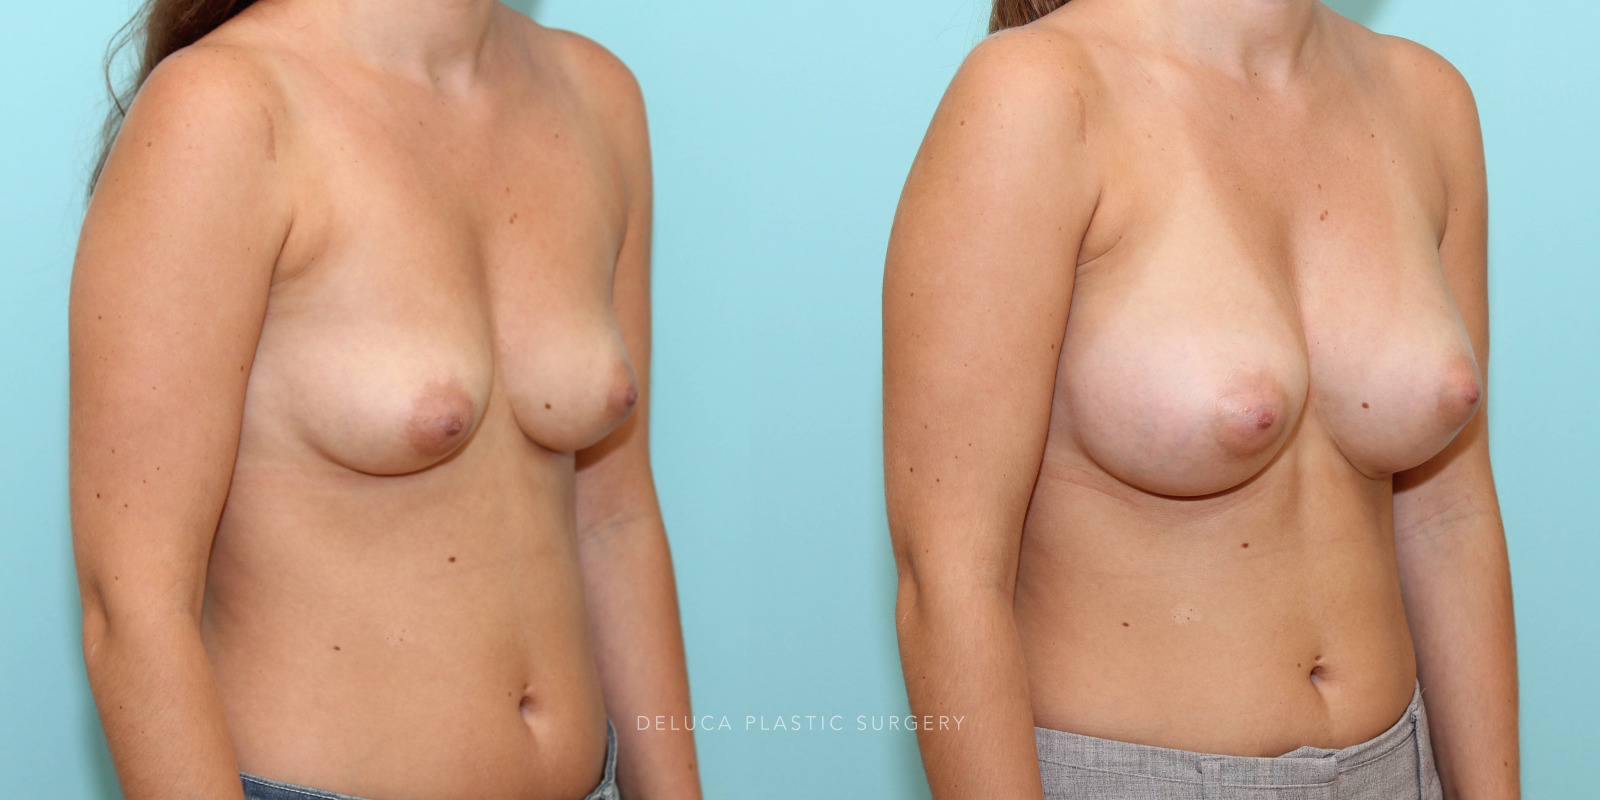 26 year old Dual Plane Breast Augmentation with 375ml Moderate Plus Silicone Implants